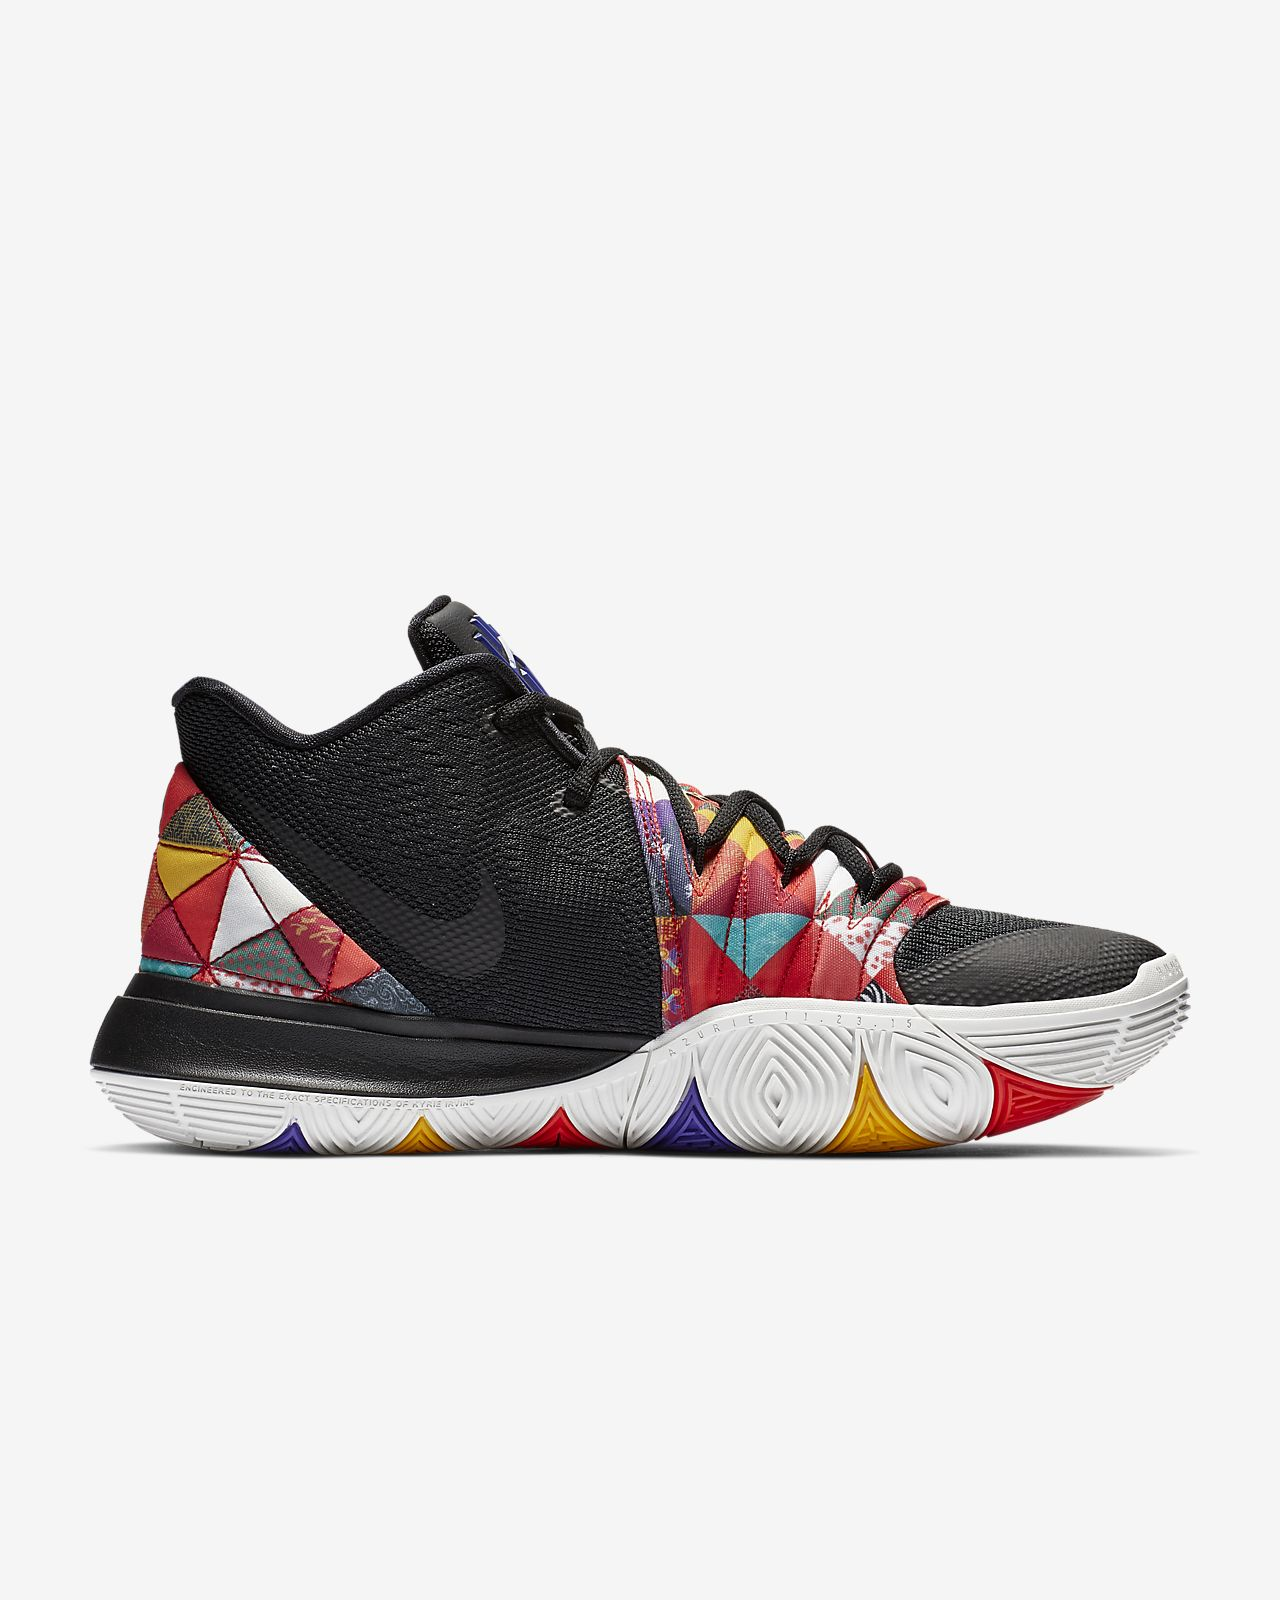 competitive price 3b98f a28c6 Low Resolution Chaussure de basketball Kyrie 5 CNY Chaussure de basketball  Kyrie 5 CNY